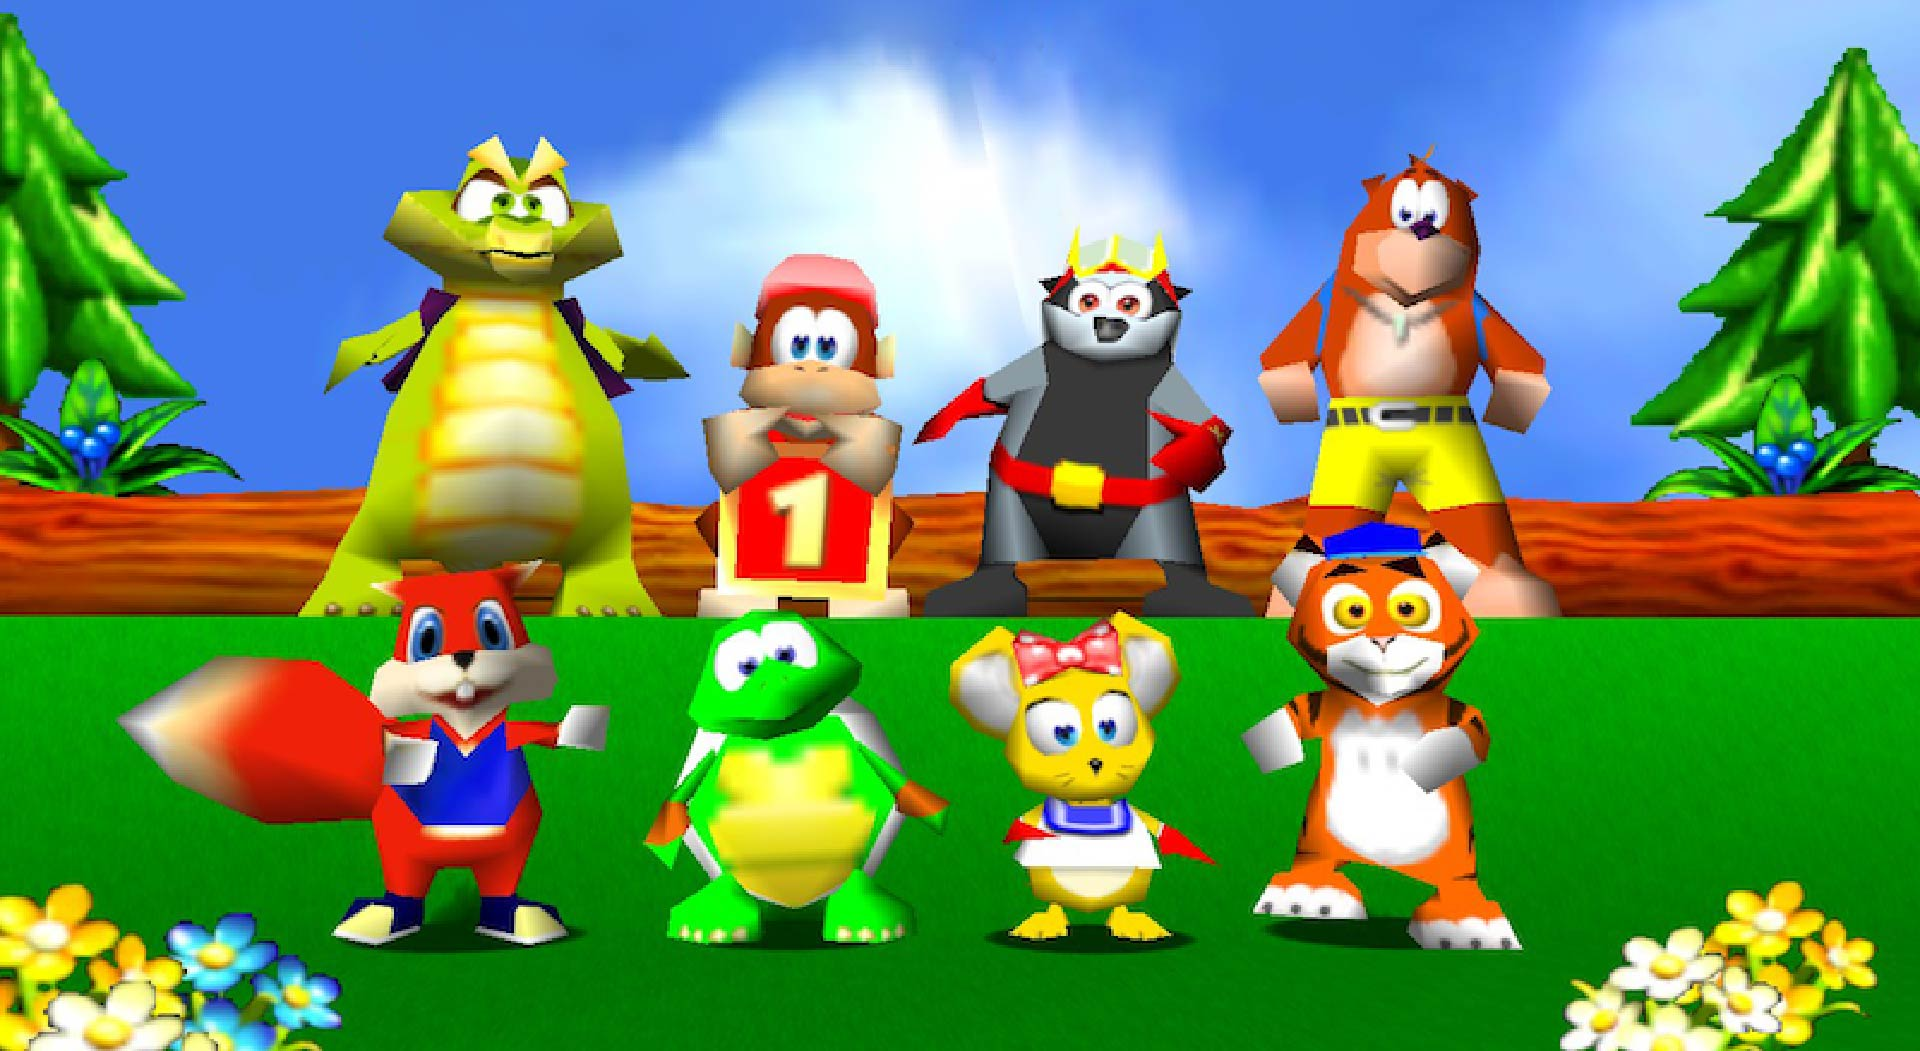 The various racers of Diddy Kong Racing.